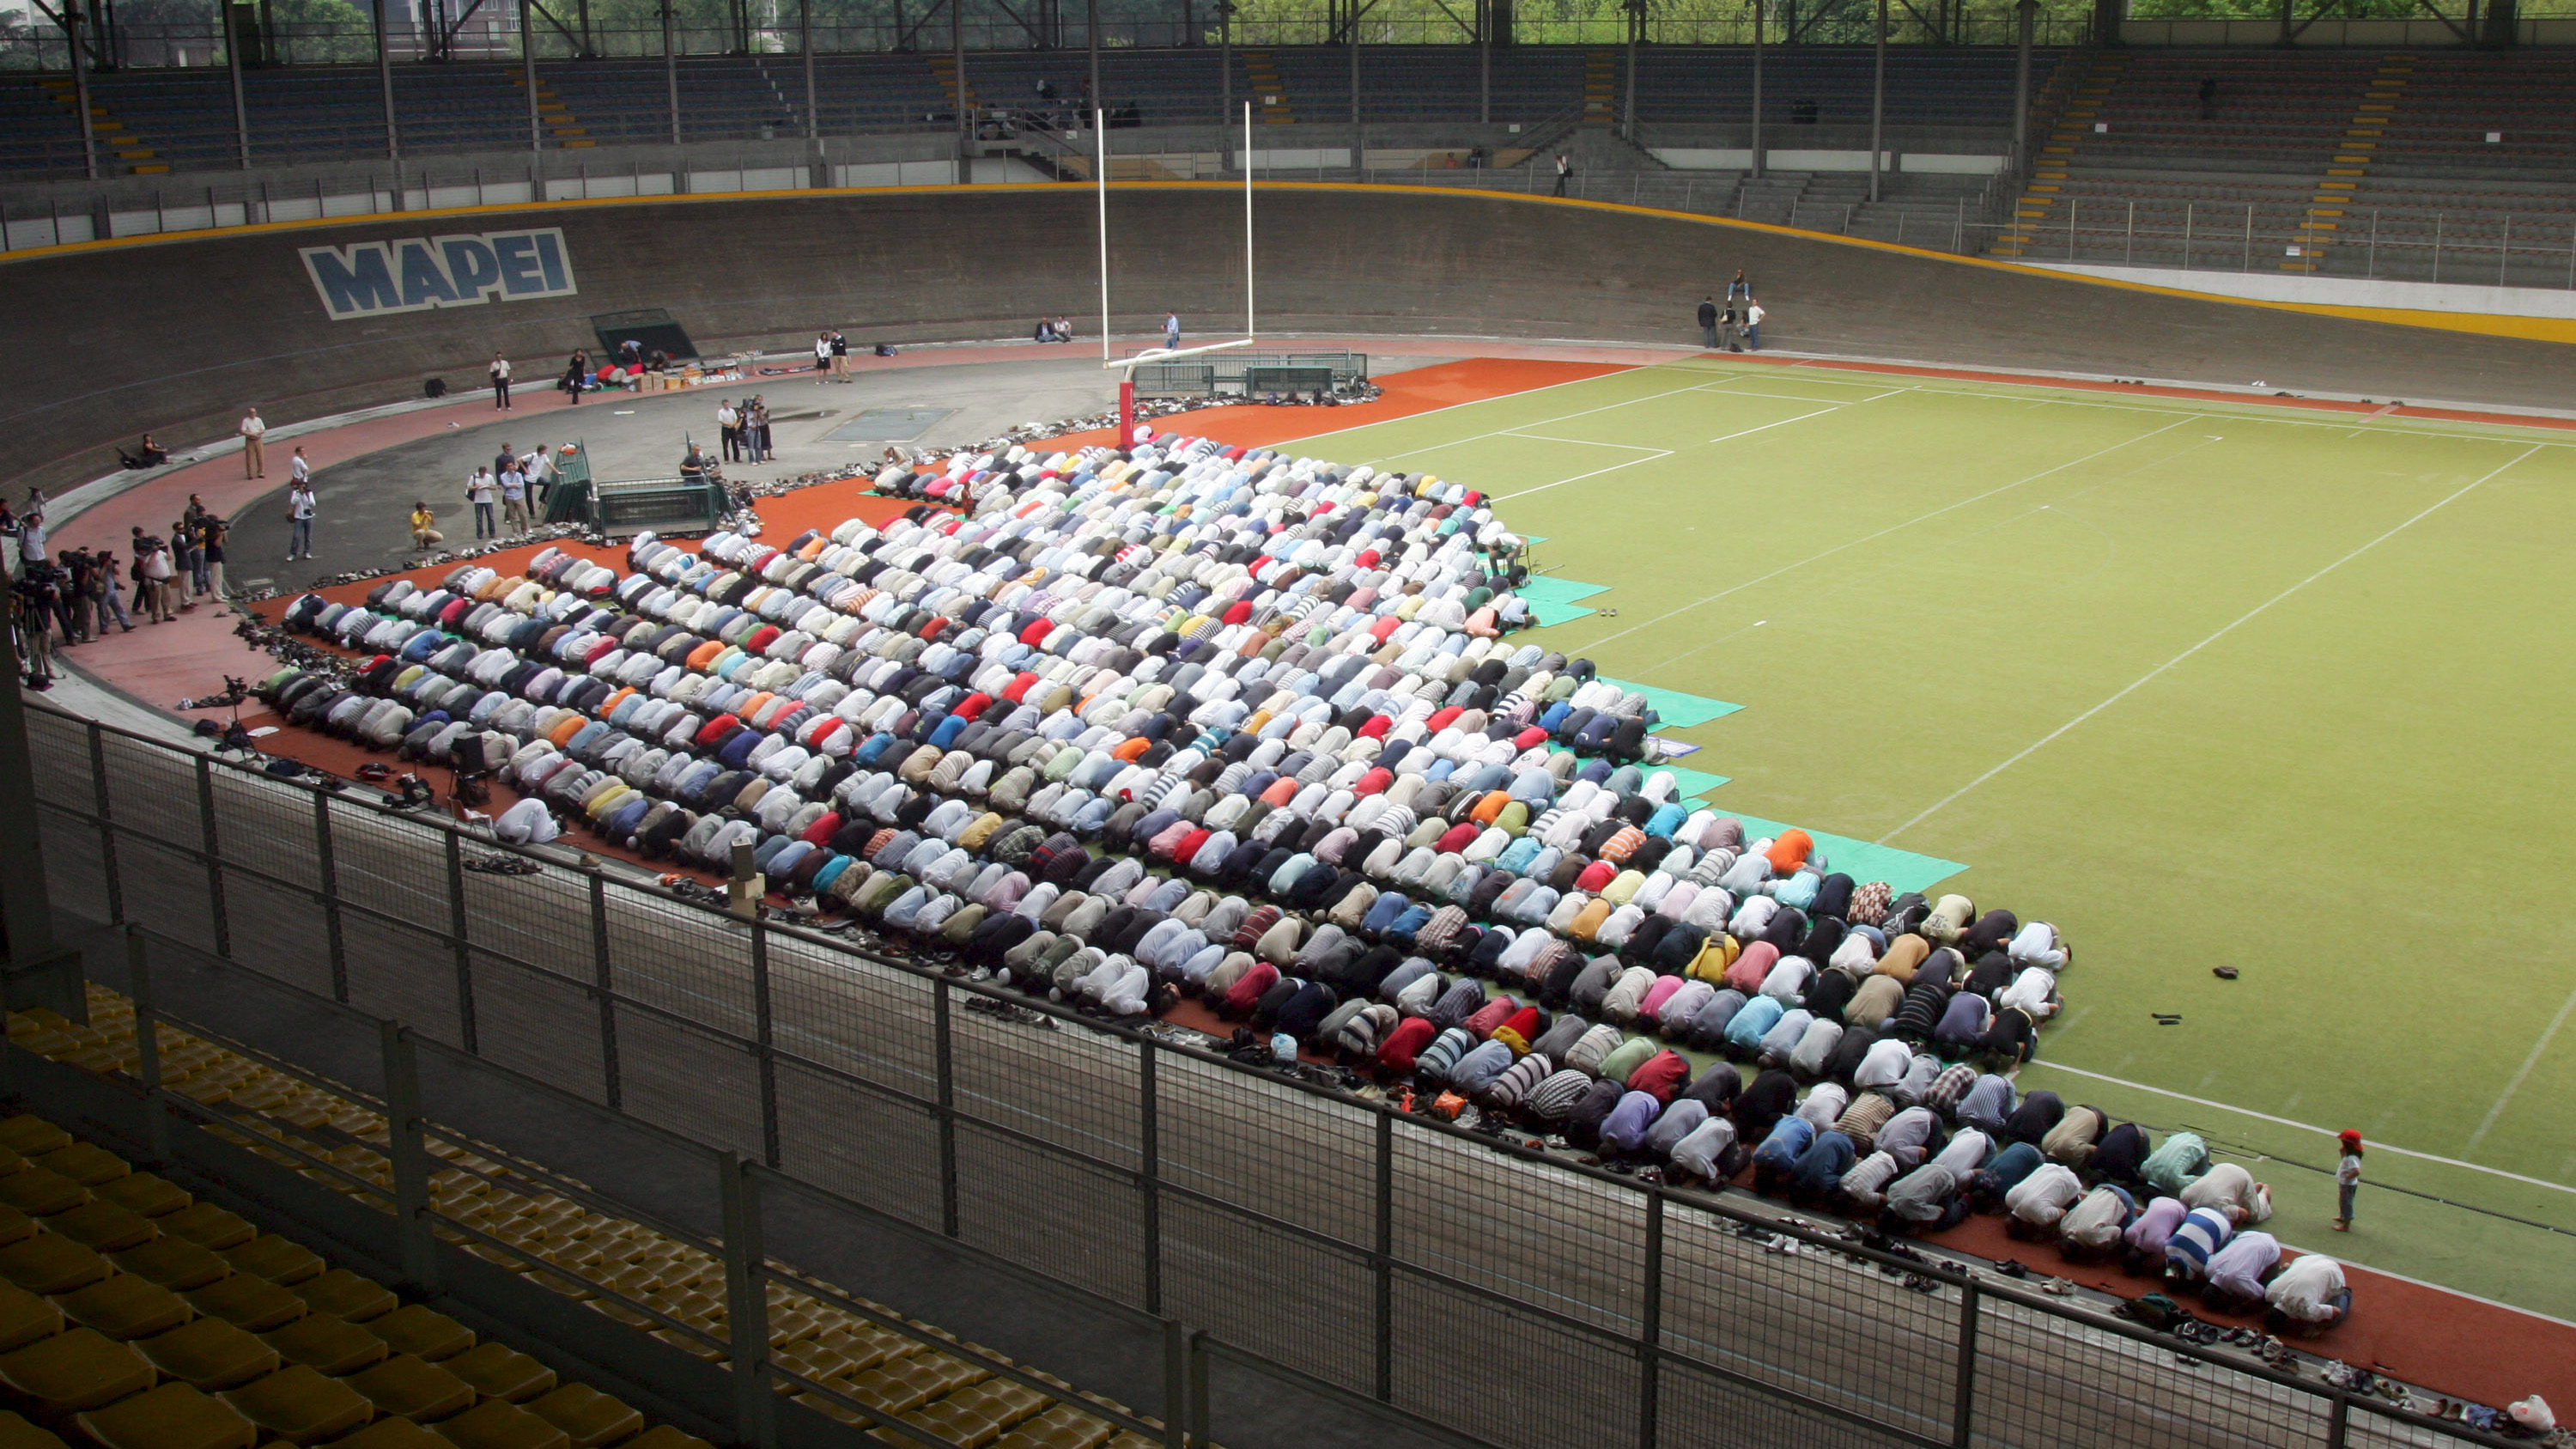 epa01417472 Members of the muslim community living in Milan pray during the Friday prayer held for the first time in Vigorelli velodrome, Italy, 18 July 2008 after the controversial mosque in viale Jenner was closed. EPA/MATTEO BAZZI